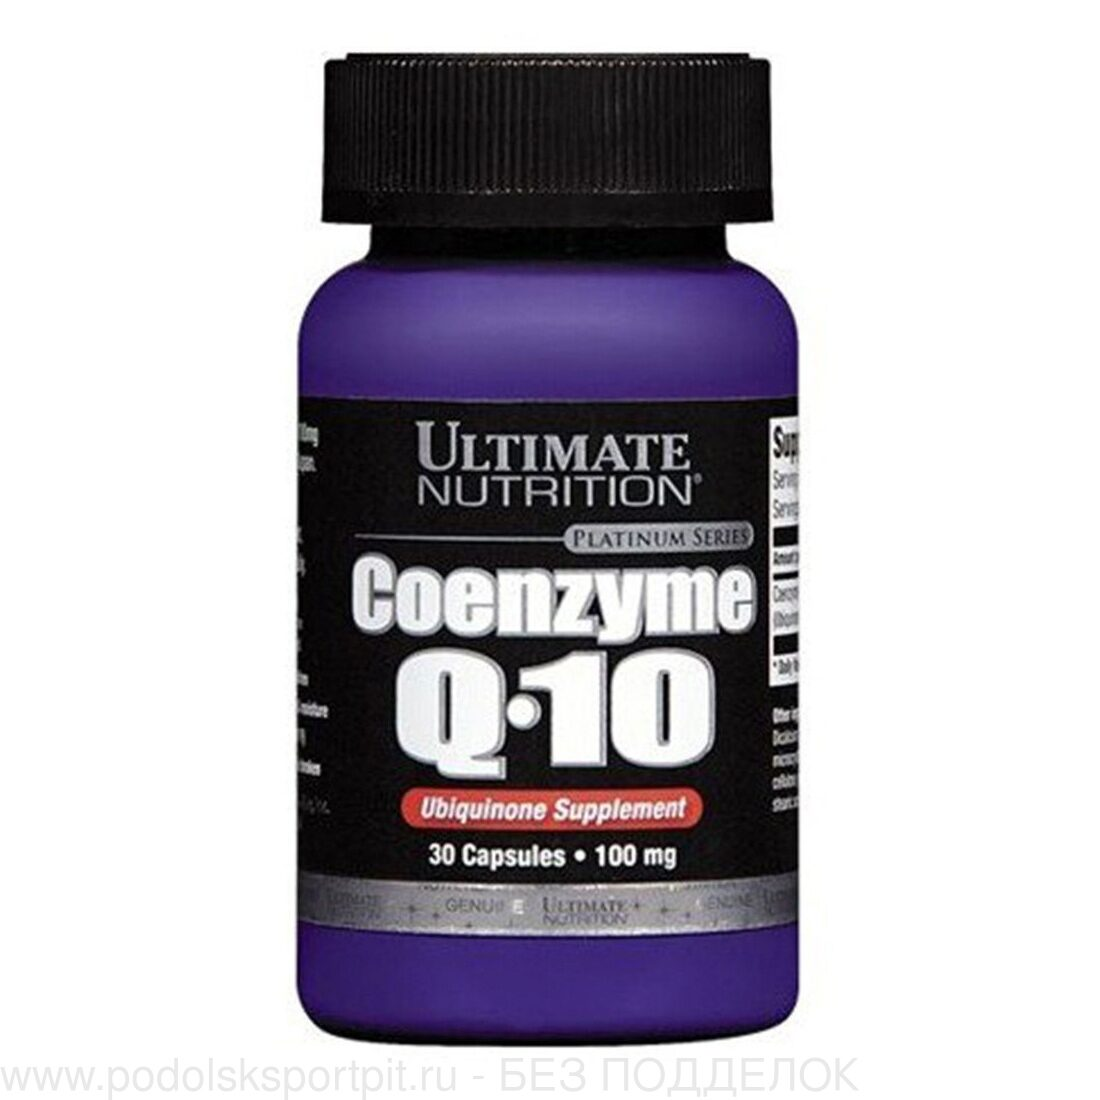 Ultimate Nutrition Coenzyme Q10, 30 caps